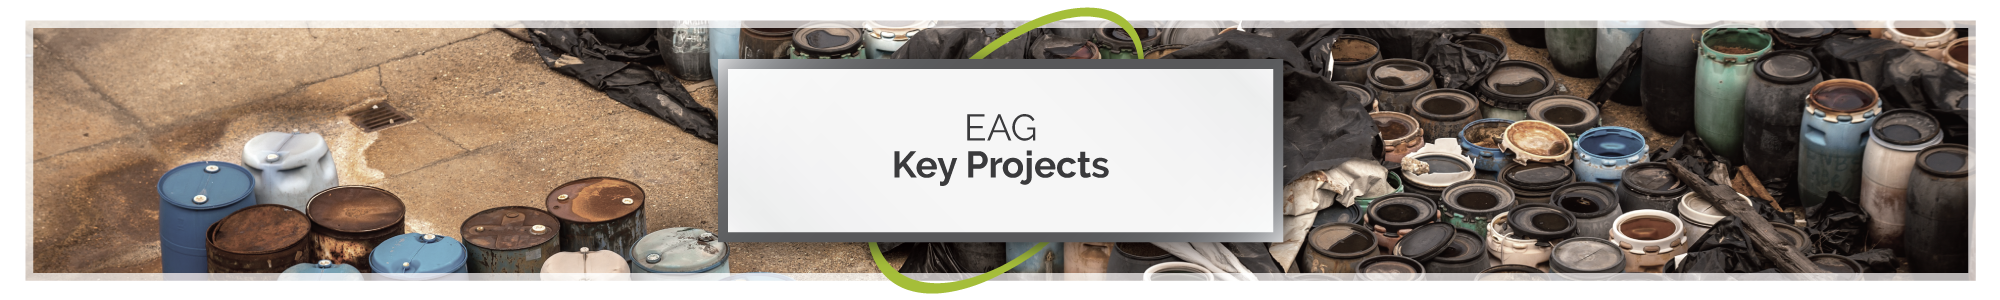 key-projects-environmental-project-management